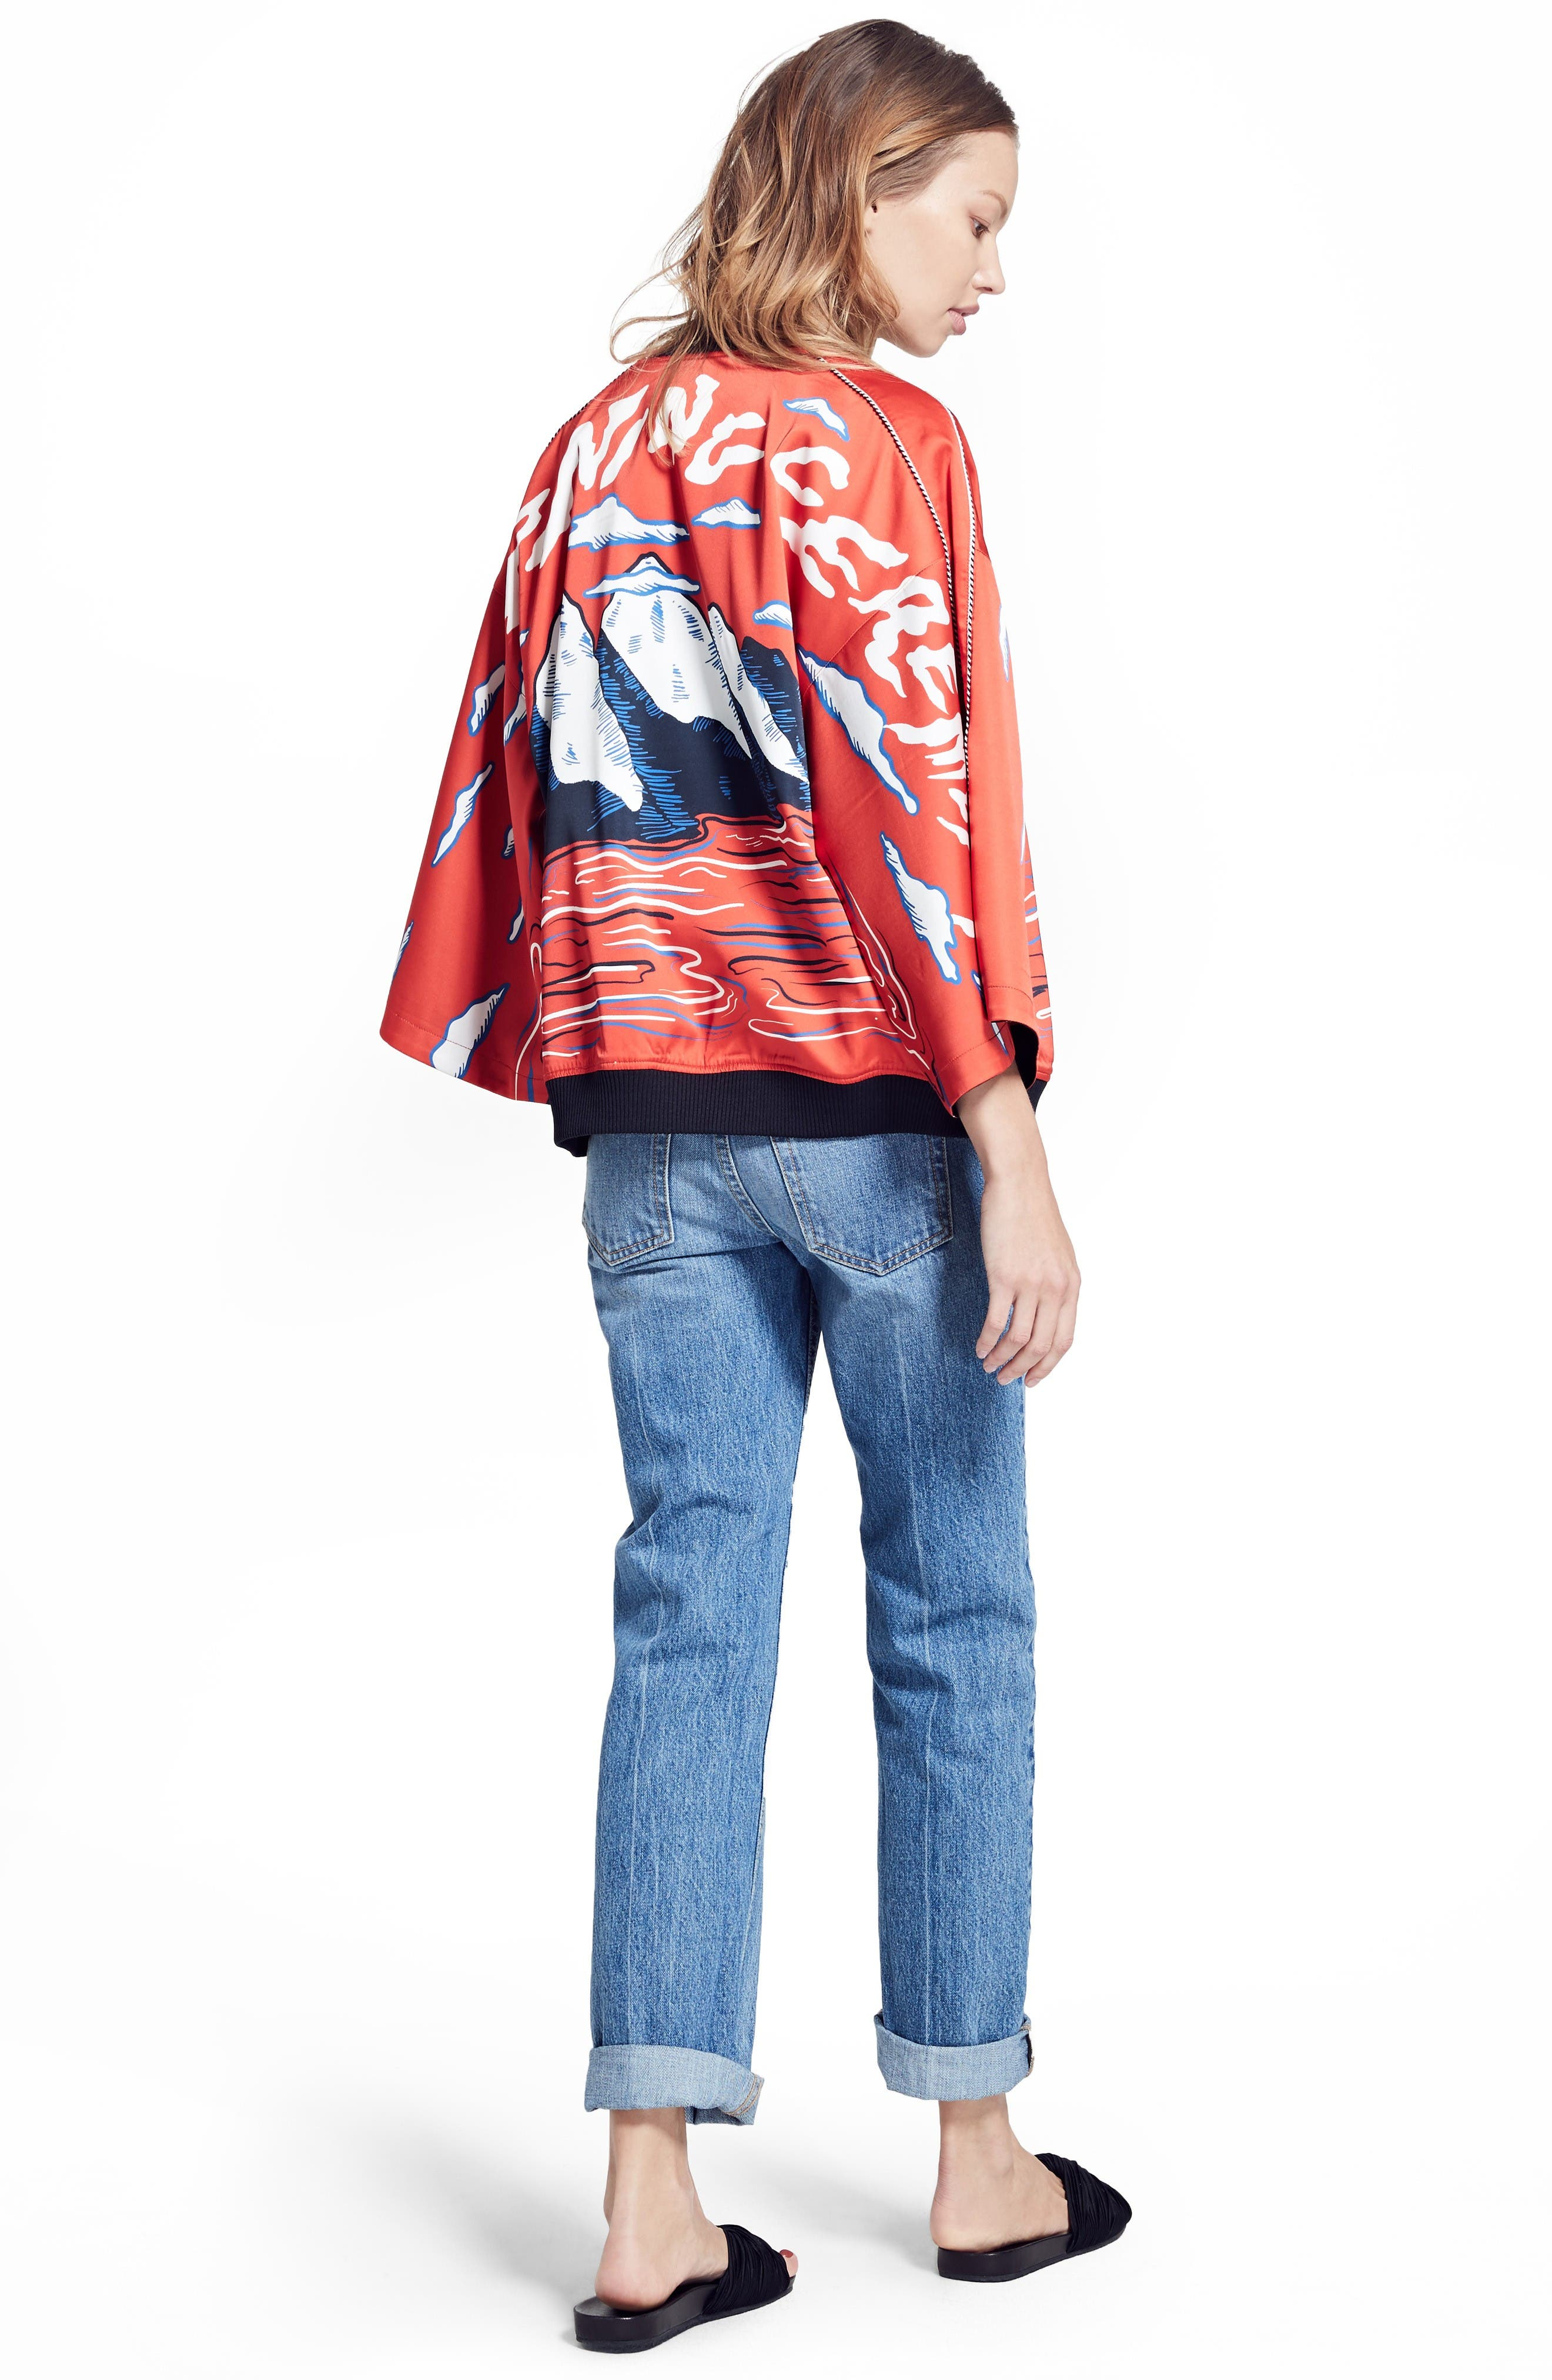 Opening Ceremony Bomber, Tee & Jeans Outfit with Accessories